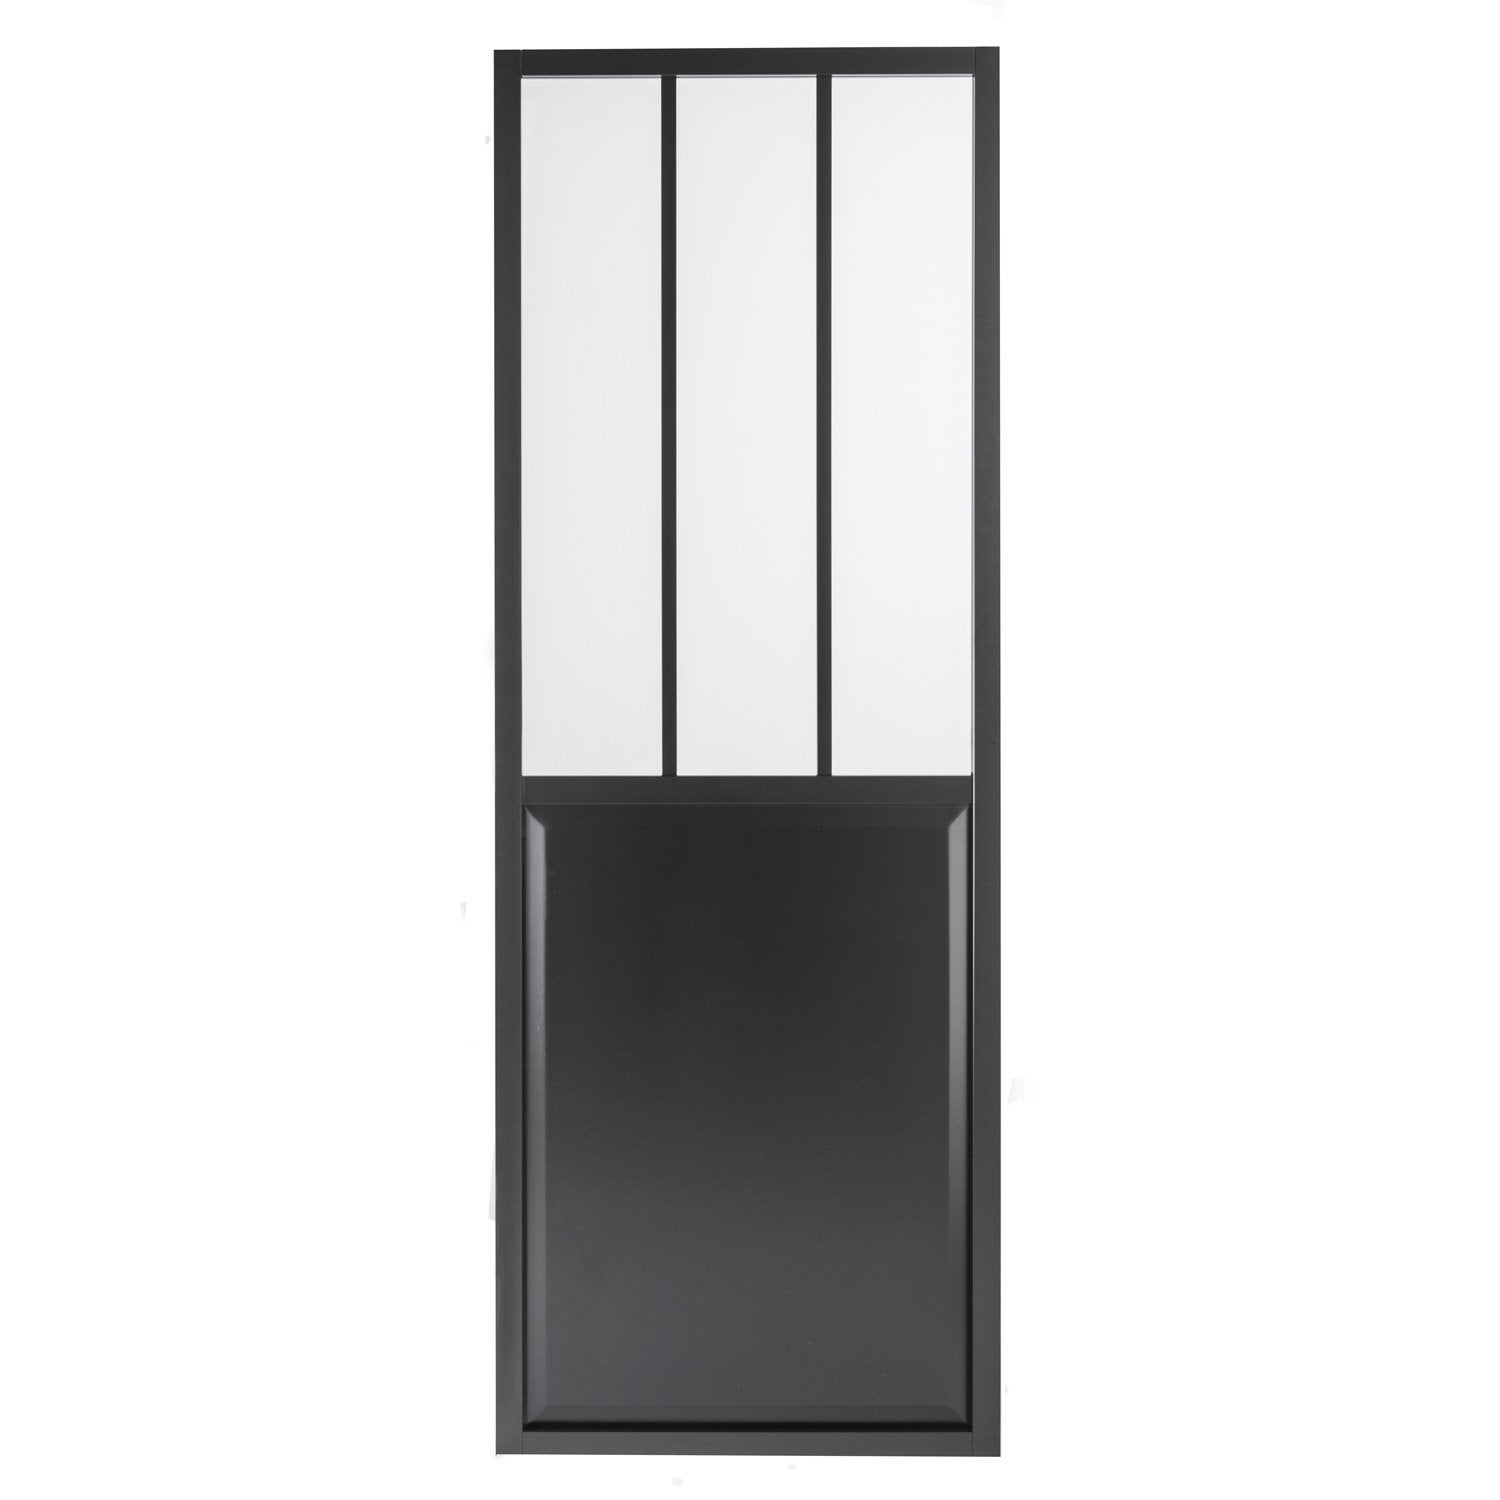 porte coulissante aluminium noir atelier verre clair. Black Bedroom Furniture Sets. Home Design Ideas